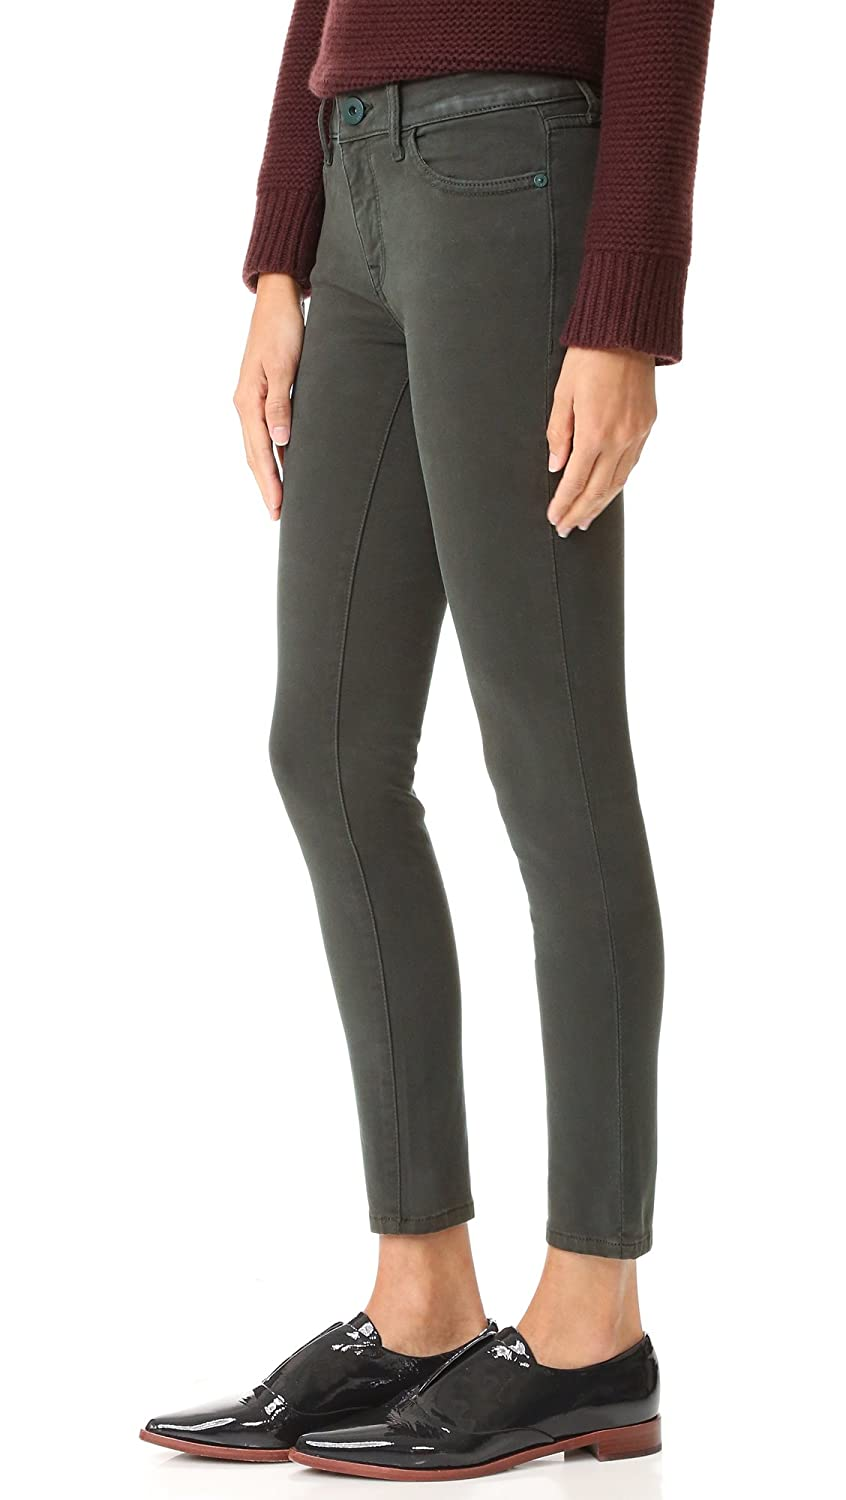 DL1961 Women's Margaux Ankle Skinny Jeans